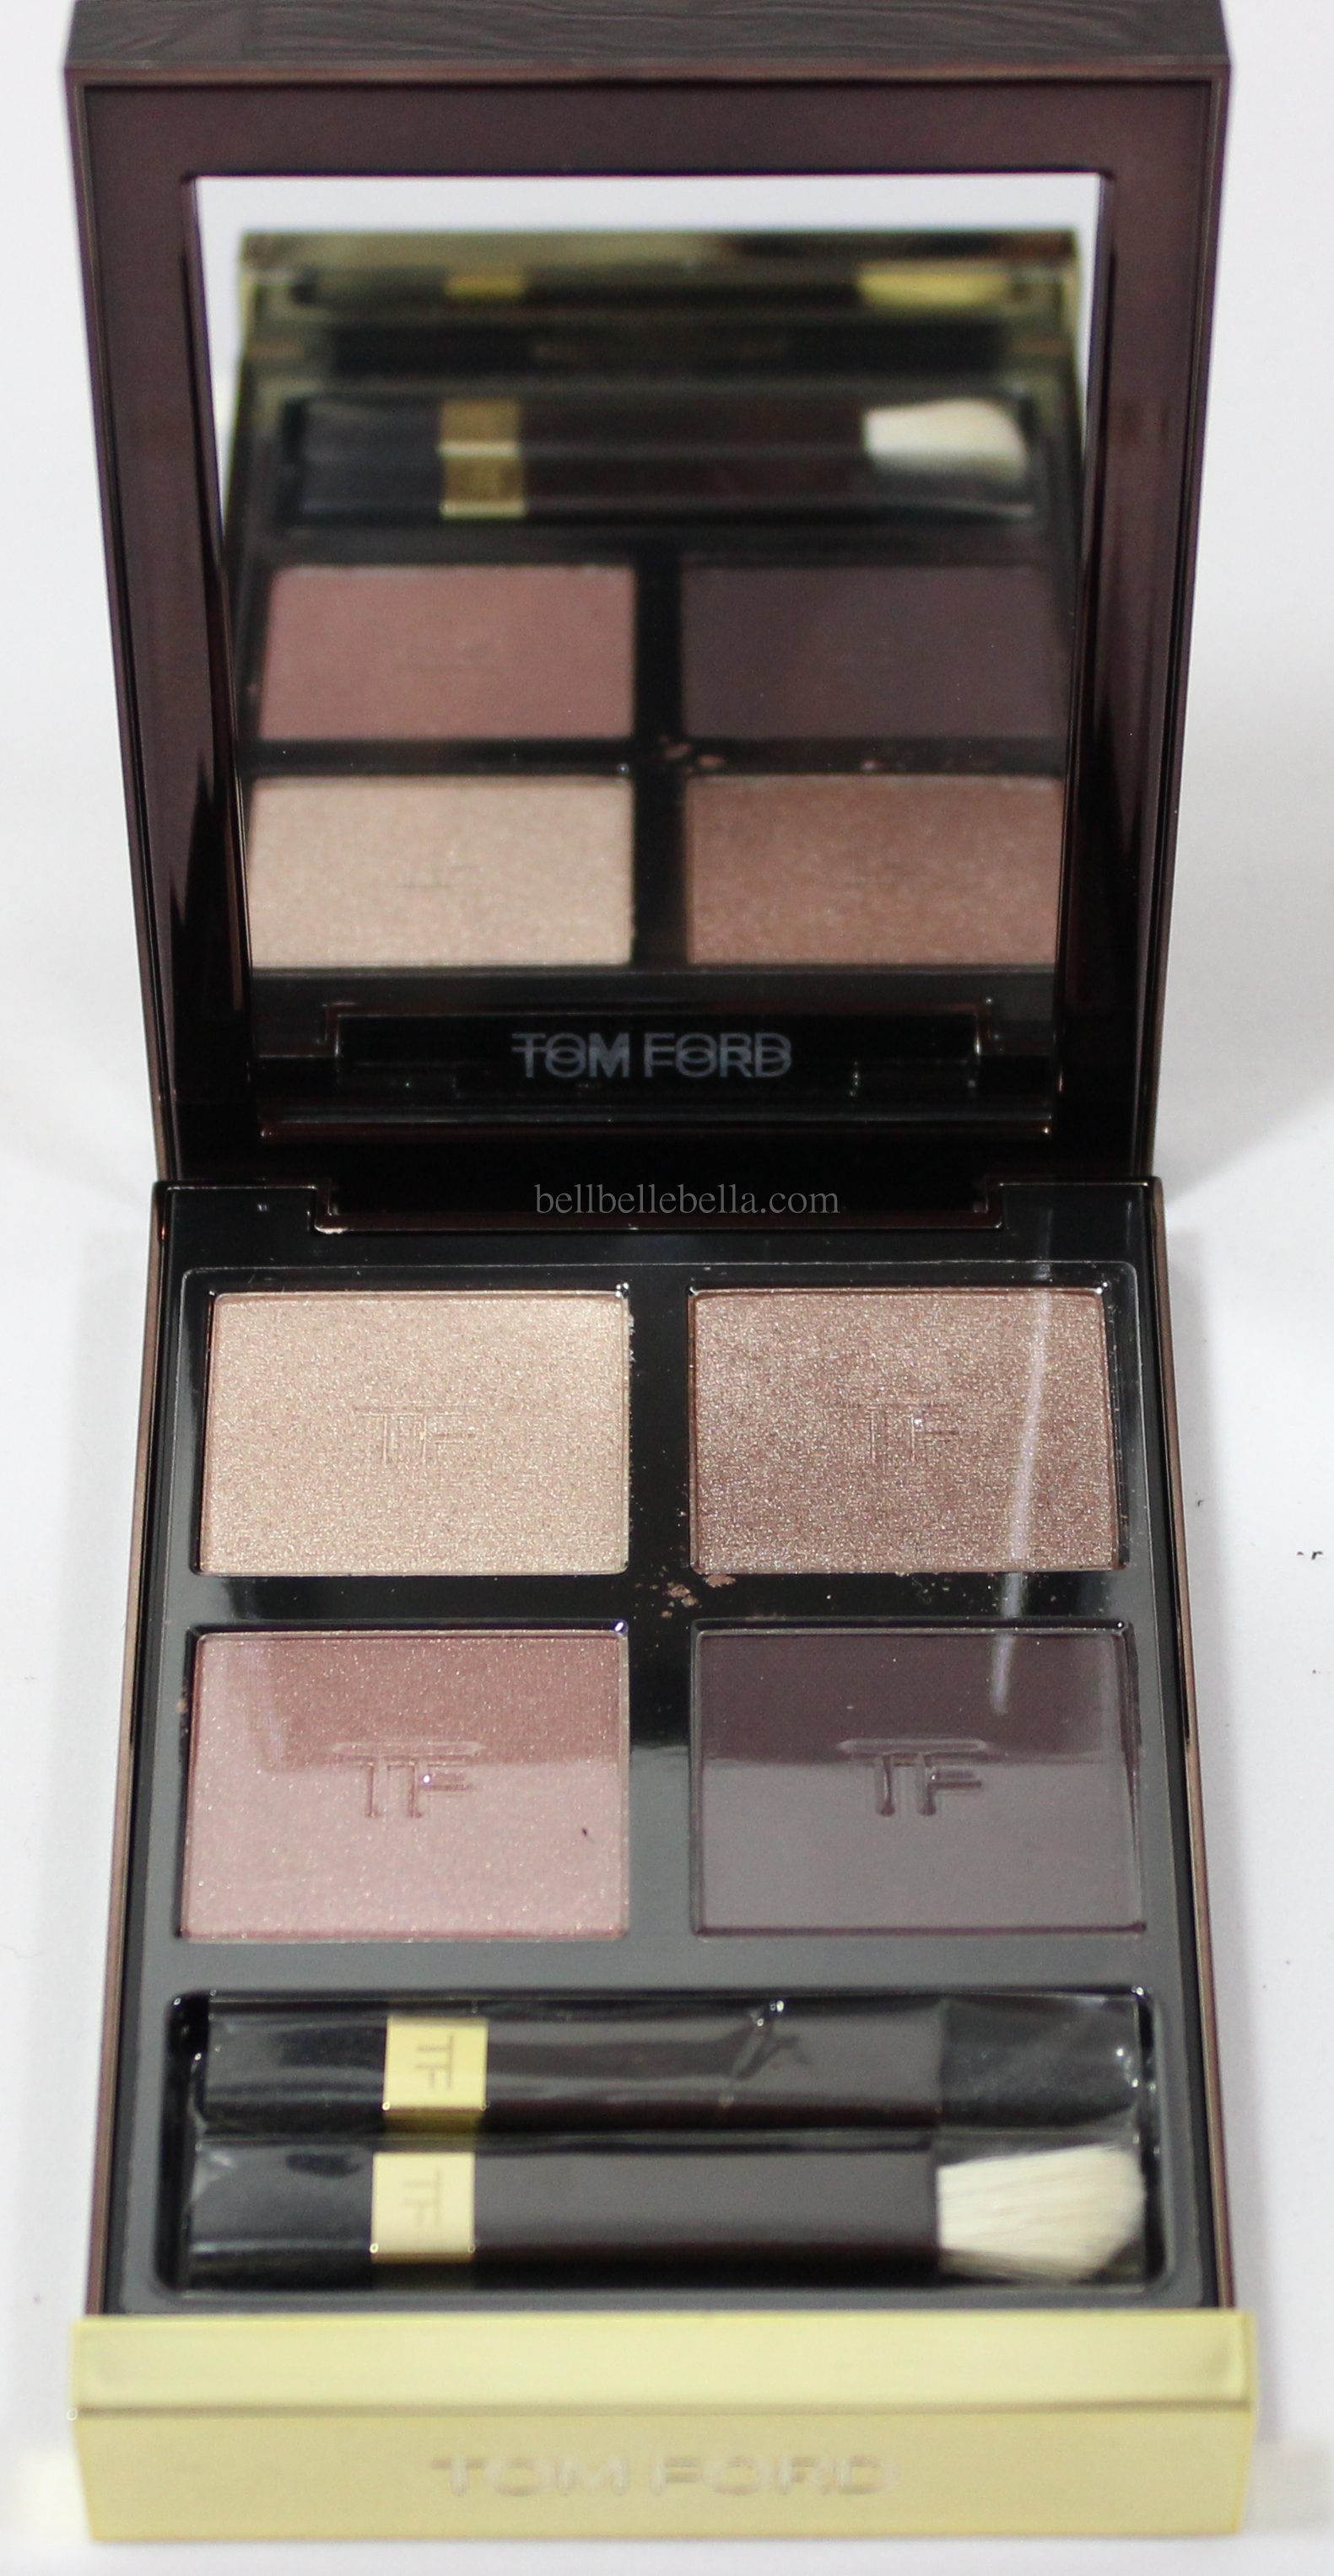 Tom Ford Eye Color Quad in Orchid Haze Review & Swatches graphic